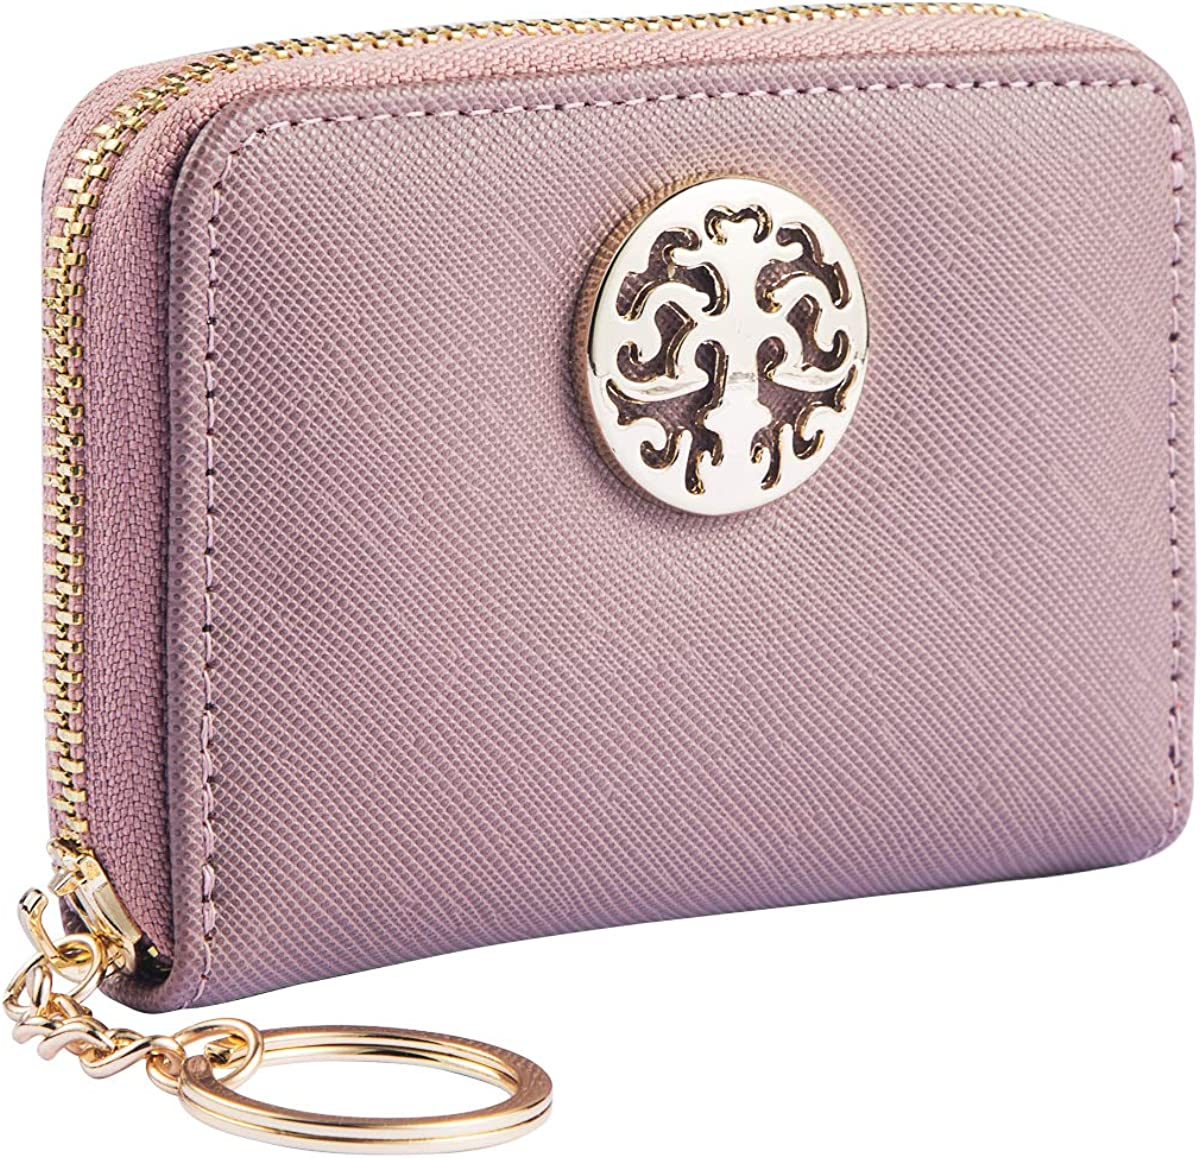 PUFER Women Mini Wallet with Keychain Small Card Case Holder Zipper